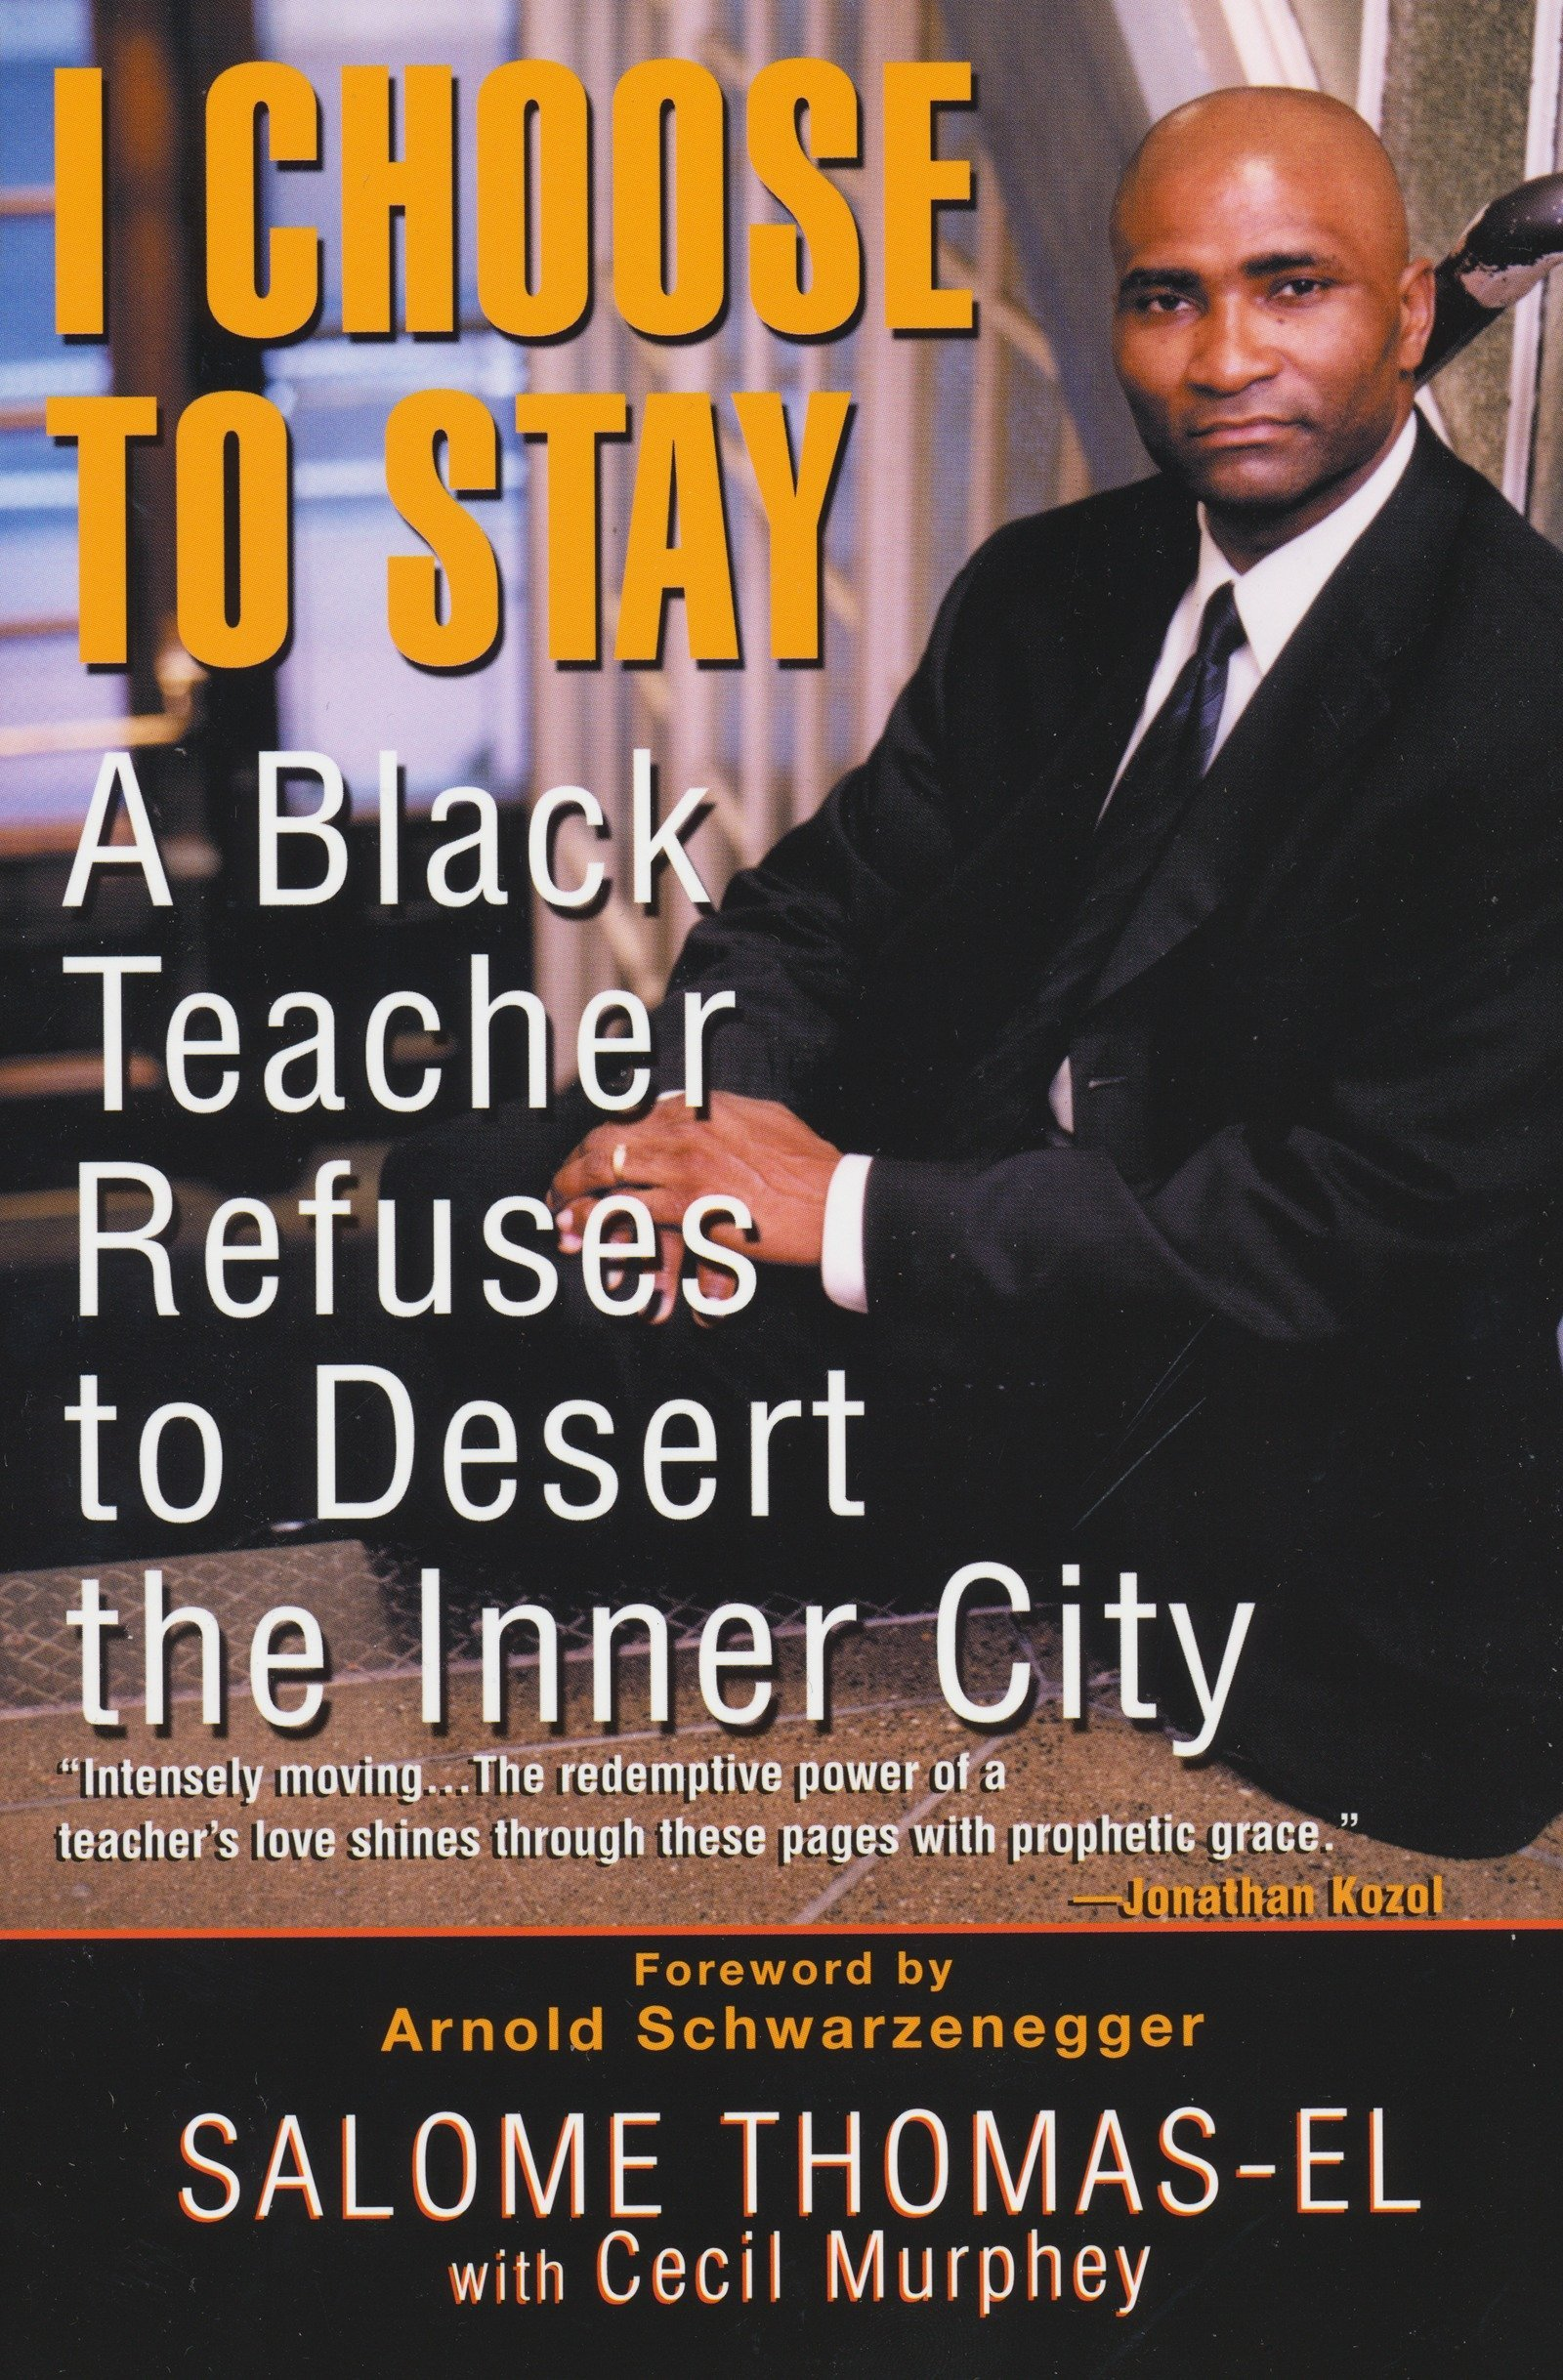 I Choose To Stay: A Black Teacher Refuses to Desert the Inner City by Kensington